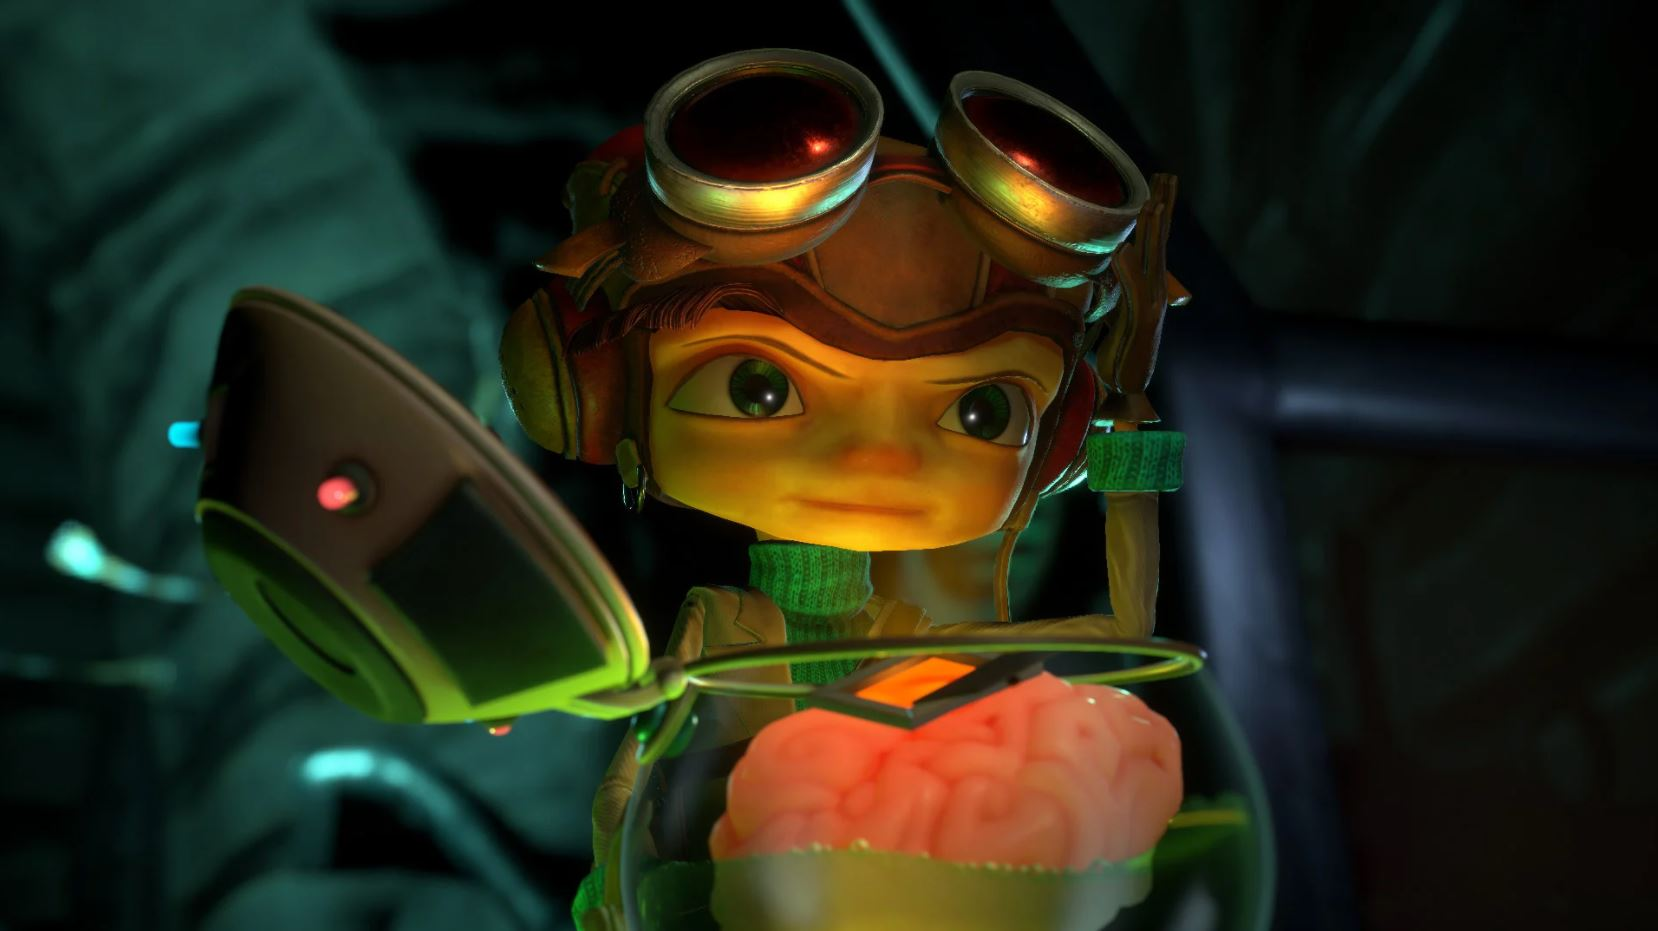 rumor-psychonauts-2-might-be-releasing-in-august-according-to-steam-database-slueths